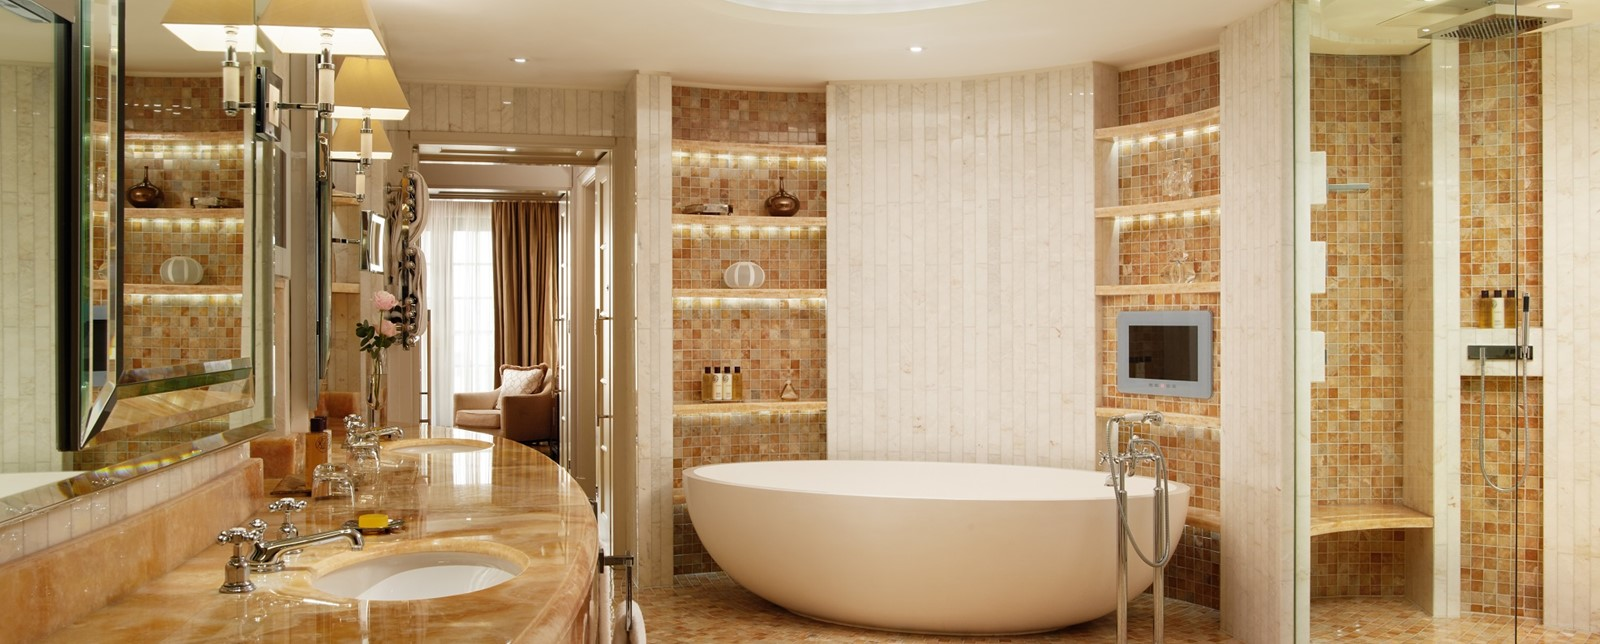 corinthia london royal penthouse bathroom